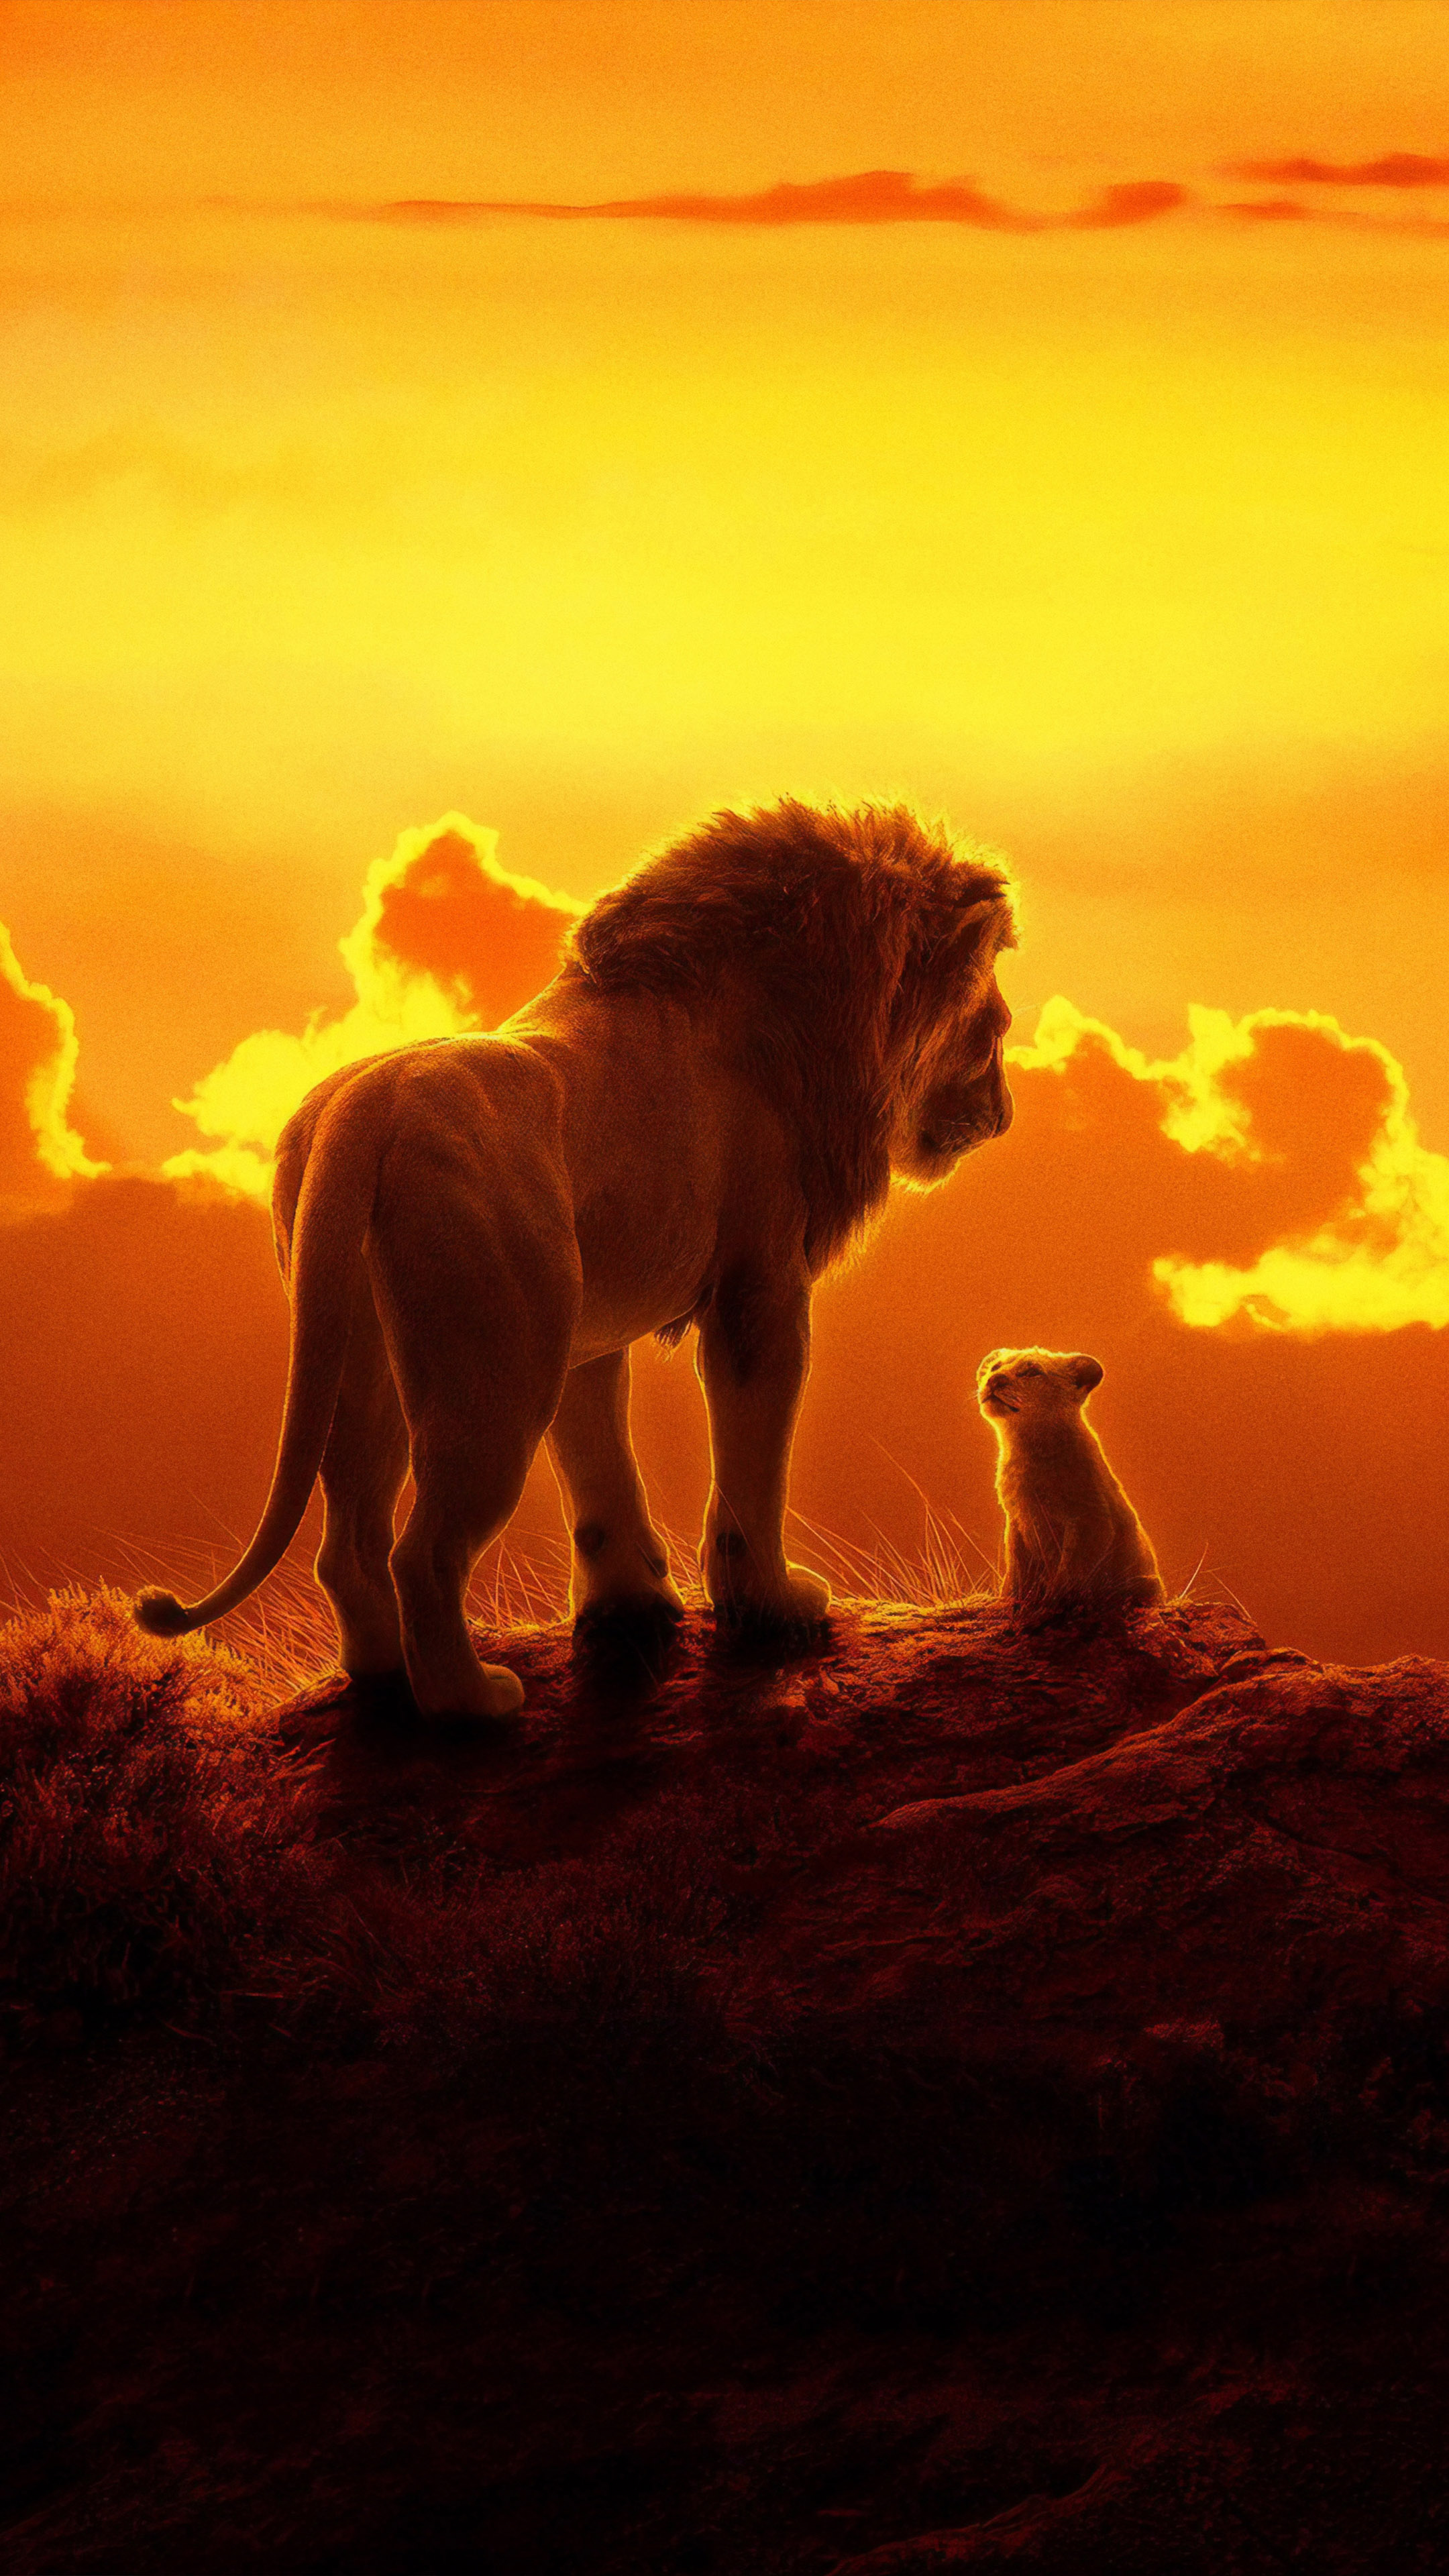 Download the lion king animation 2019 free pure 4k ultra - Lion 4k wallpaper for mobile ...